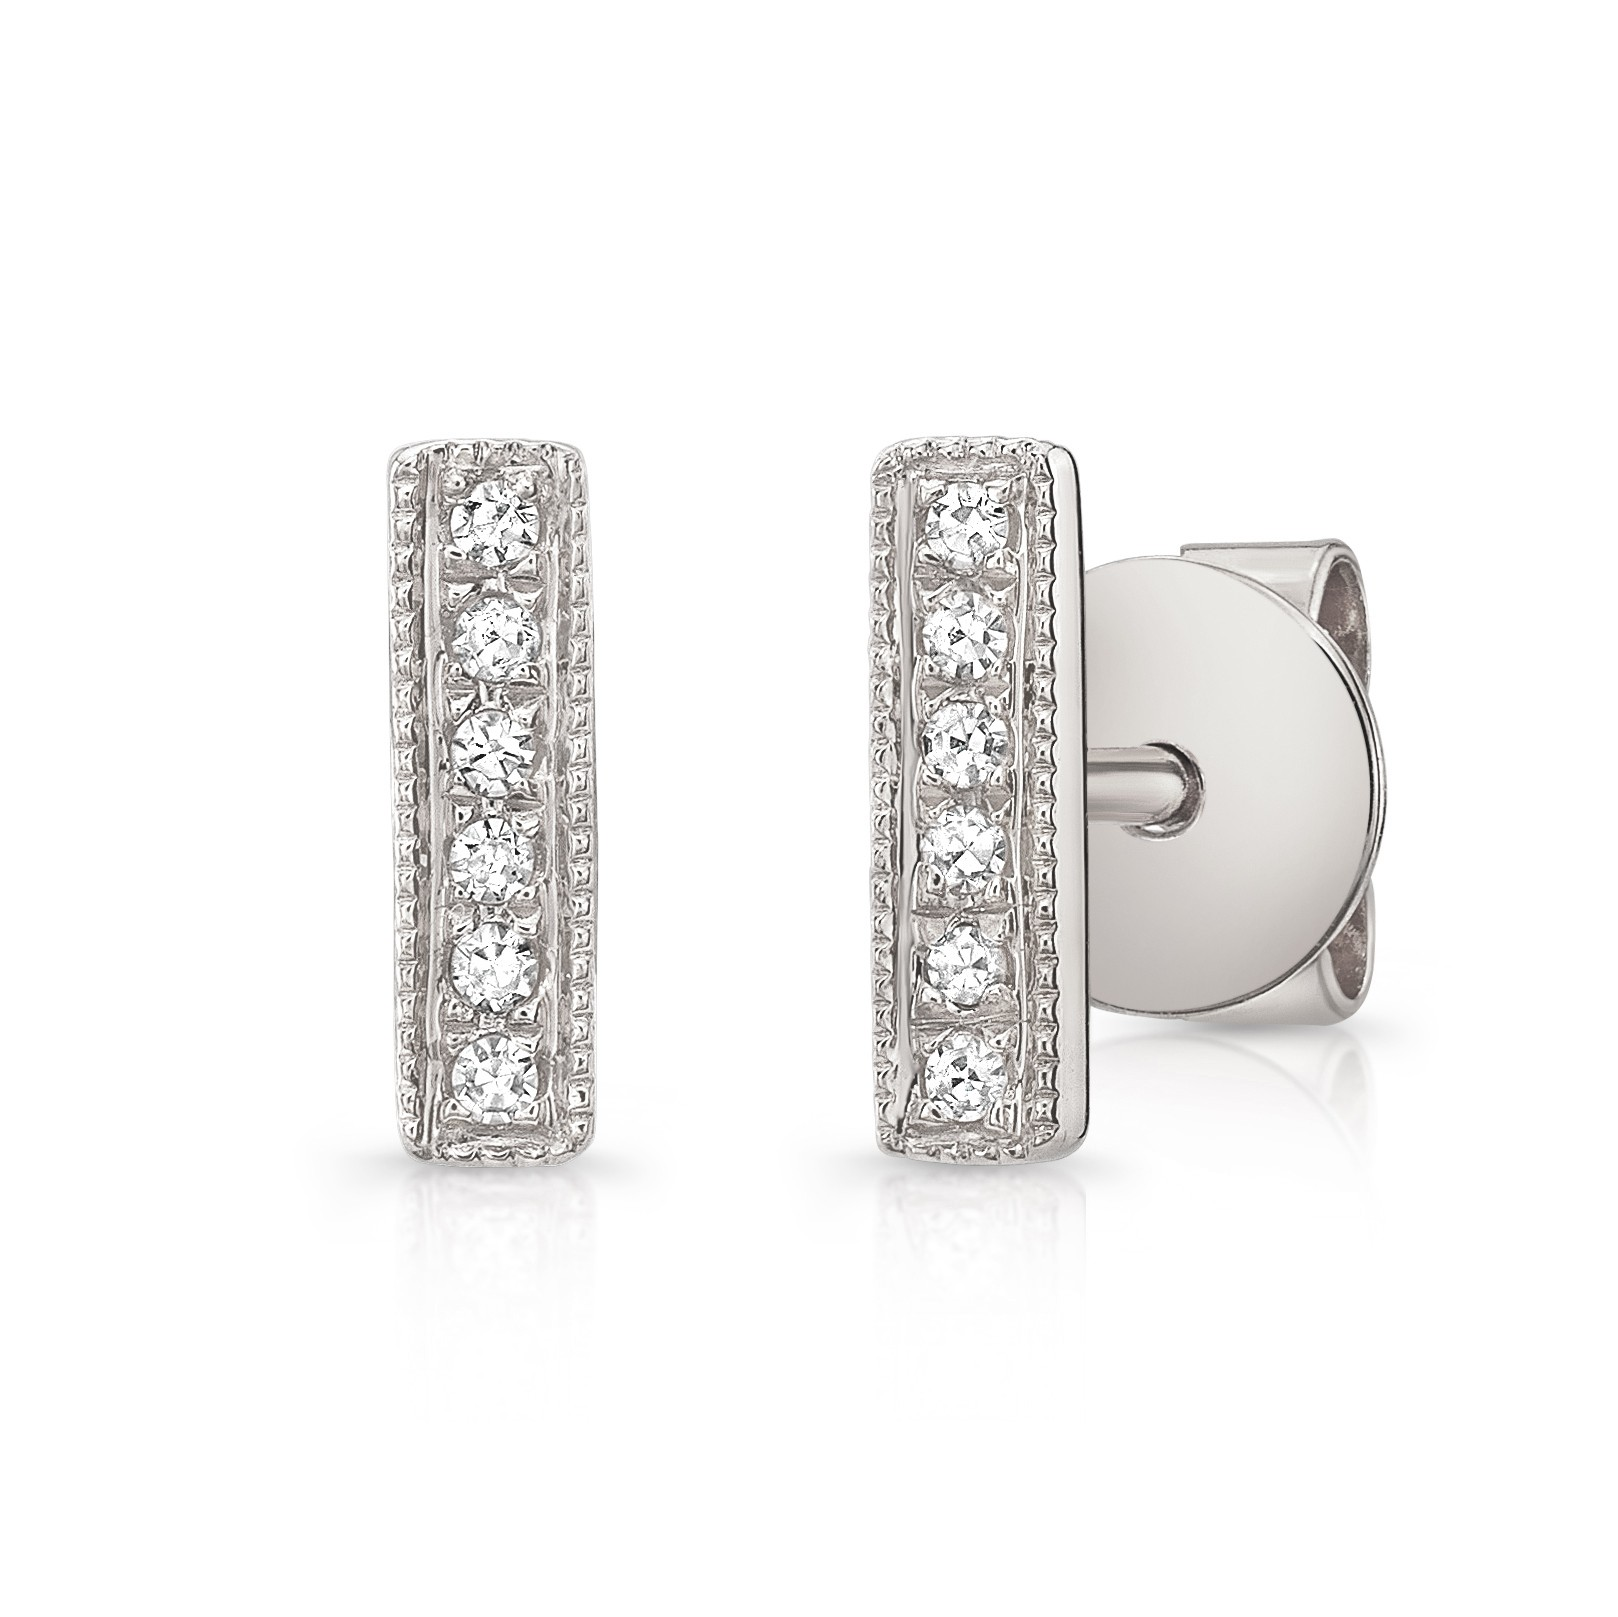 14KT White Gold Diamond Bar Stud Earrings